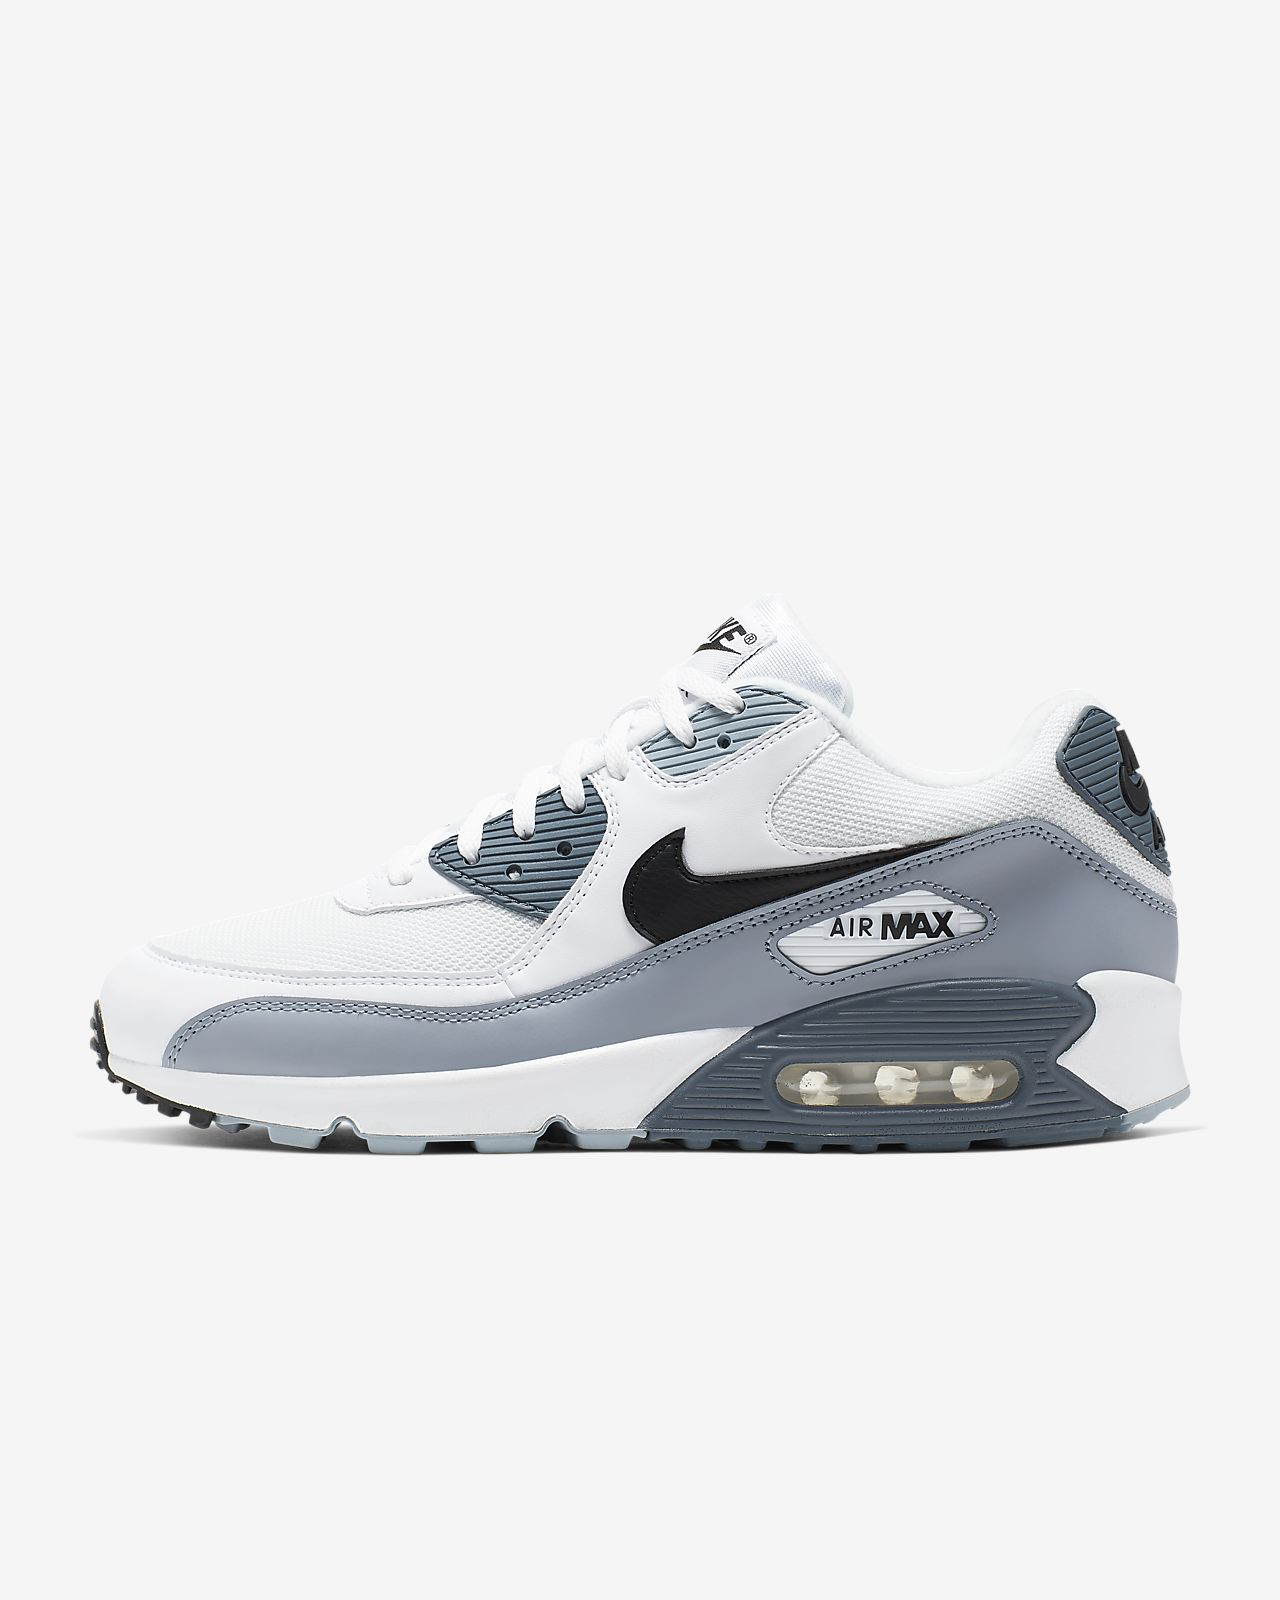 100% authentic a33e5 c369c ... Nike Air Max 90 Essential-sko til mænd